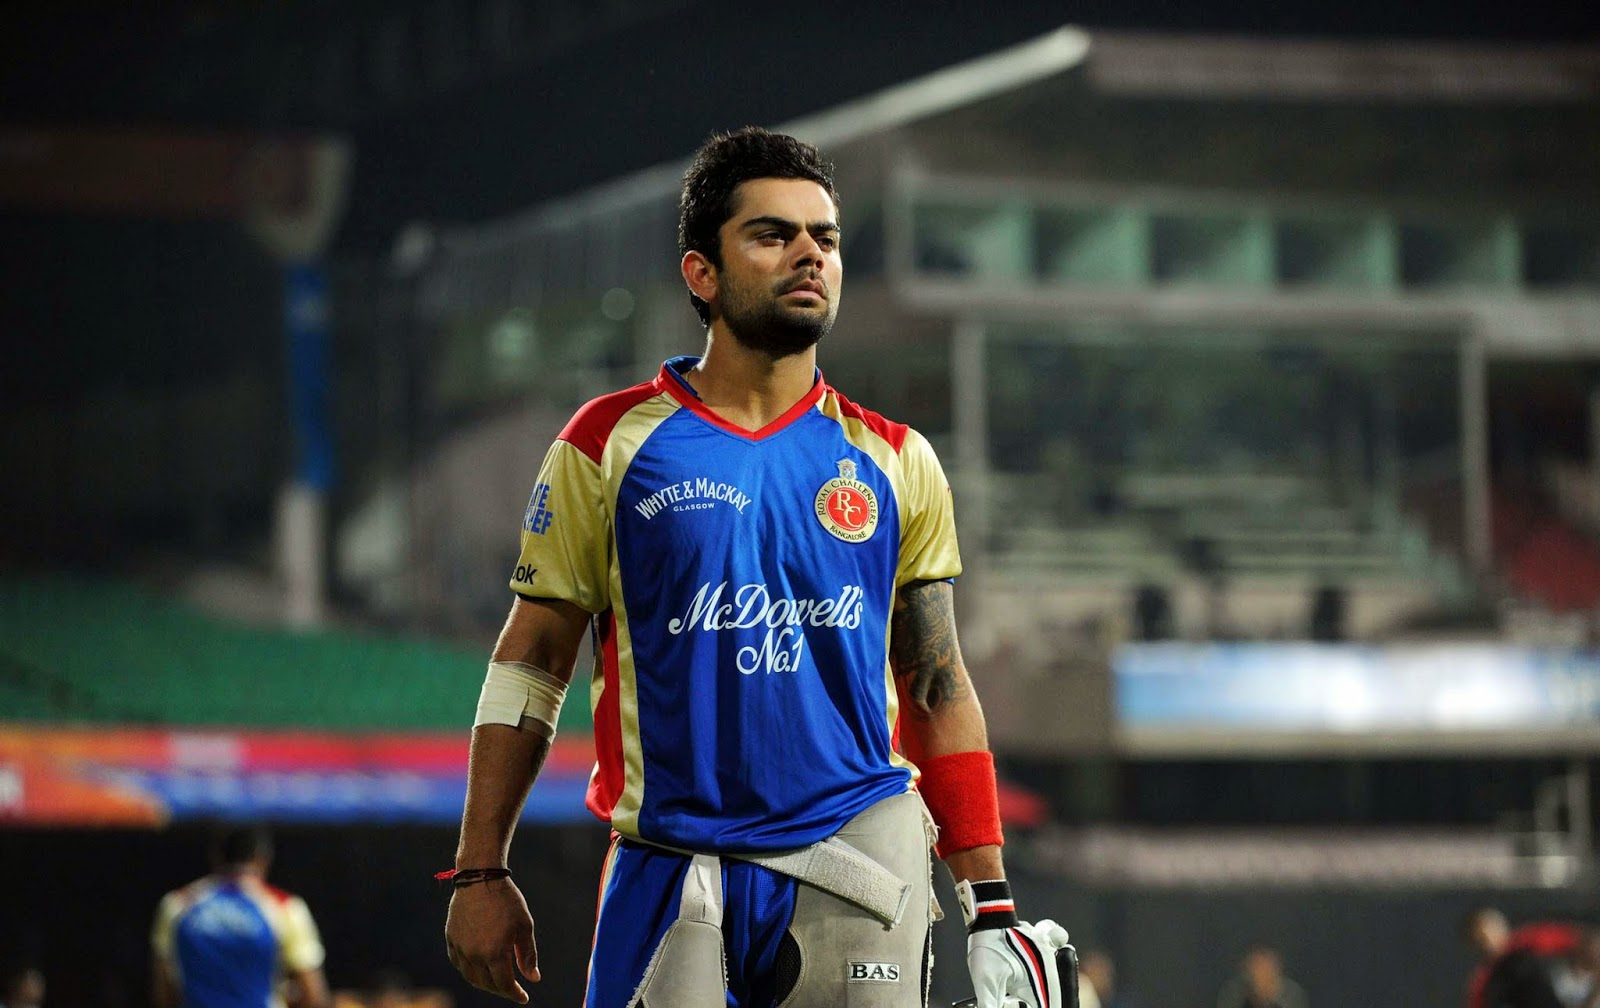 cricket full hd photo wallpaper Virat kohli free download